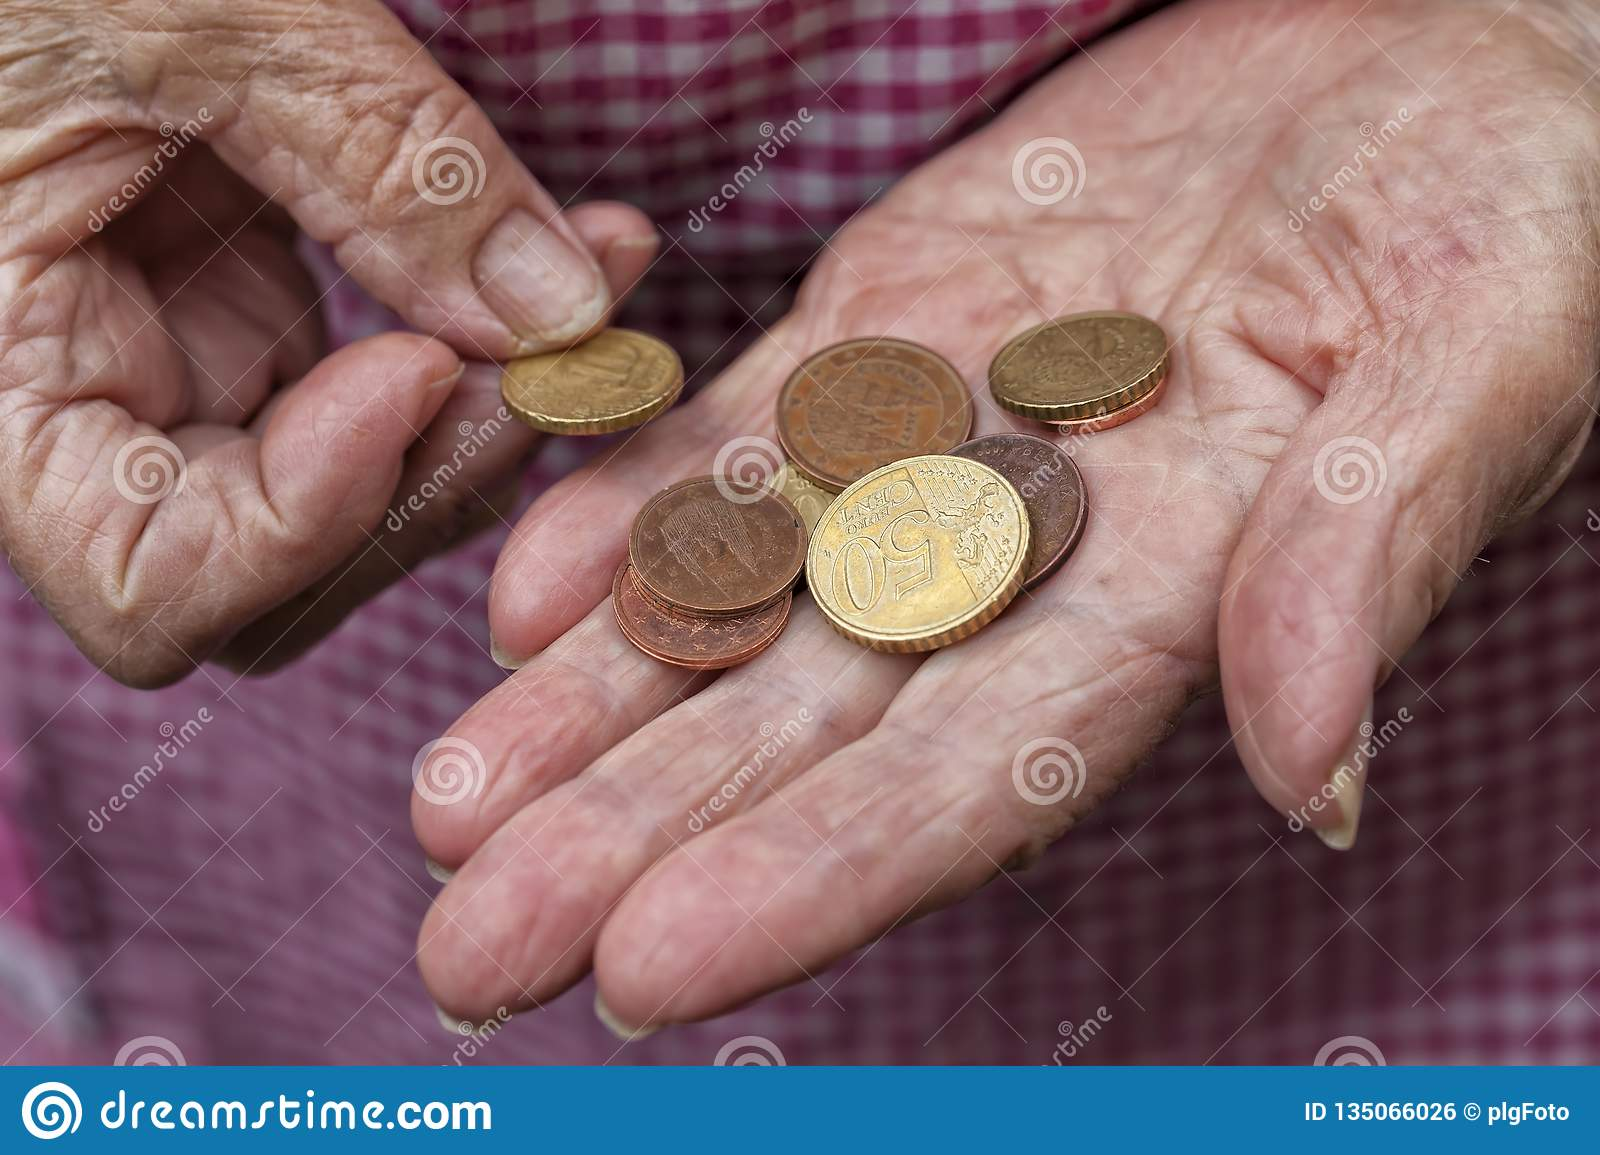 An elderly lady holds a few cents of euro